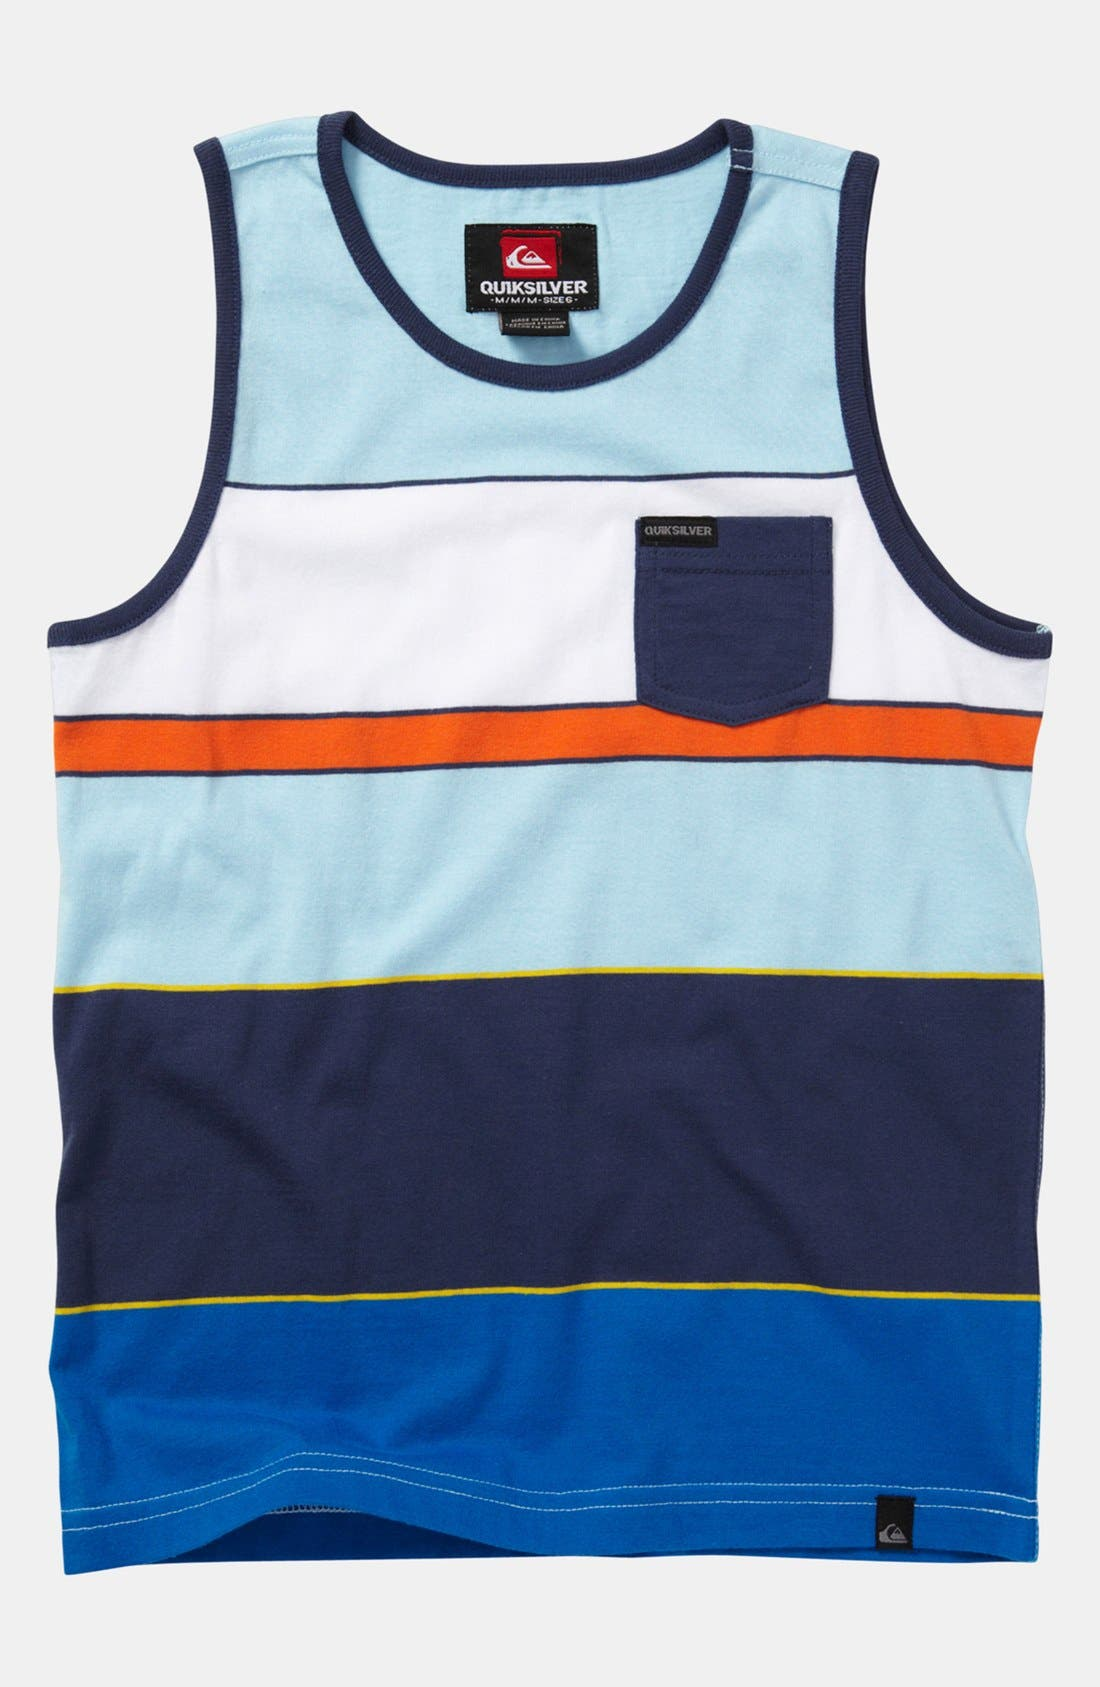 Alternate Image 1 Selected - Quiksilver 'Kirkwood' Tank Top (Baby)